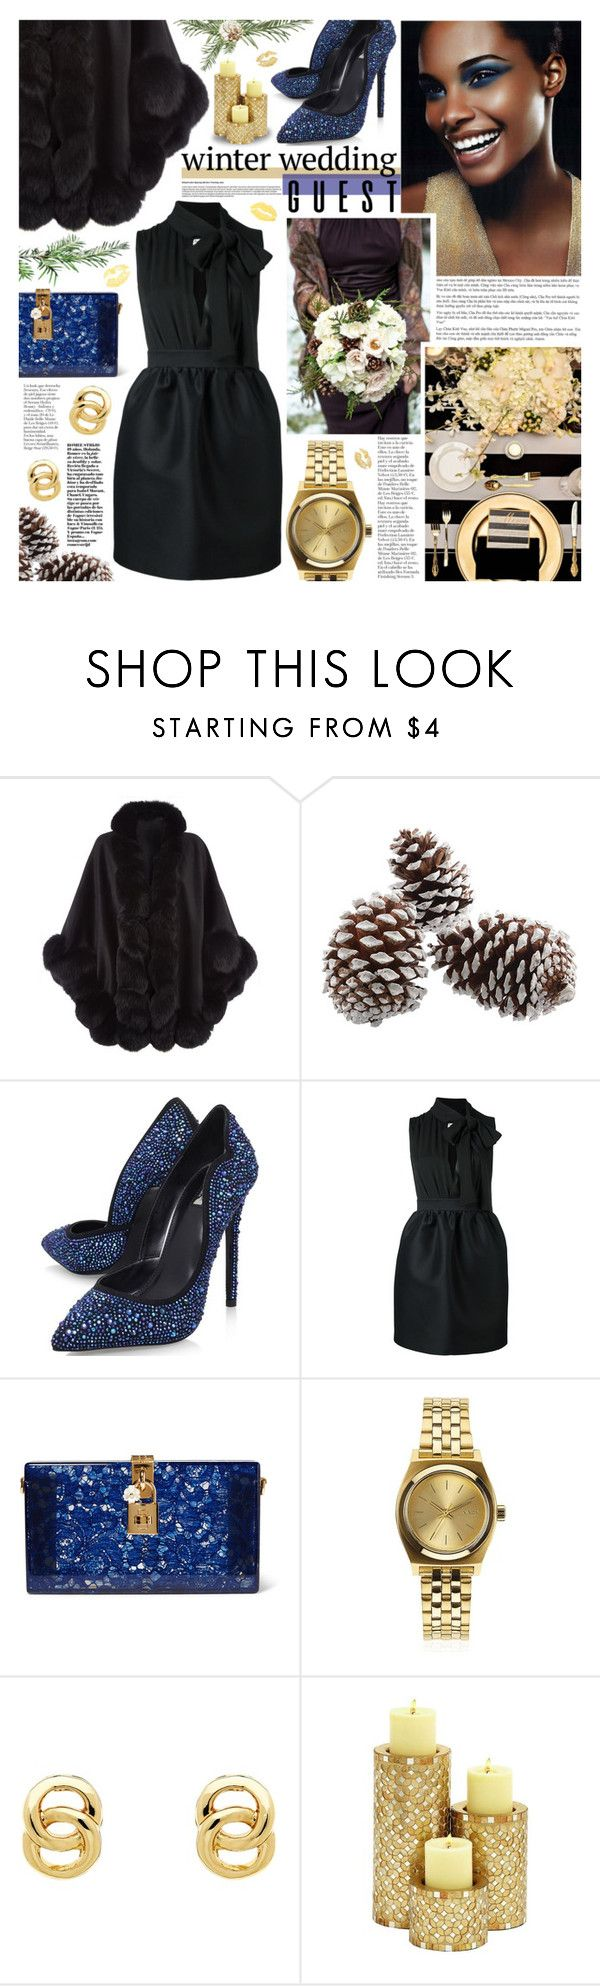 """""""Selena"""" by kumi-chan ❤ liked on Polyvore featuring Harrods, Carvela, Dolce&Gabbana, Nixon and Monet"""